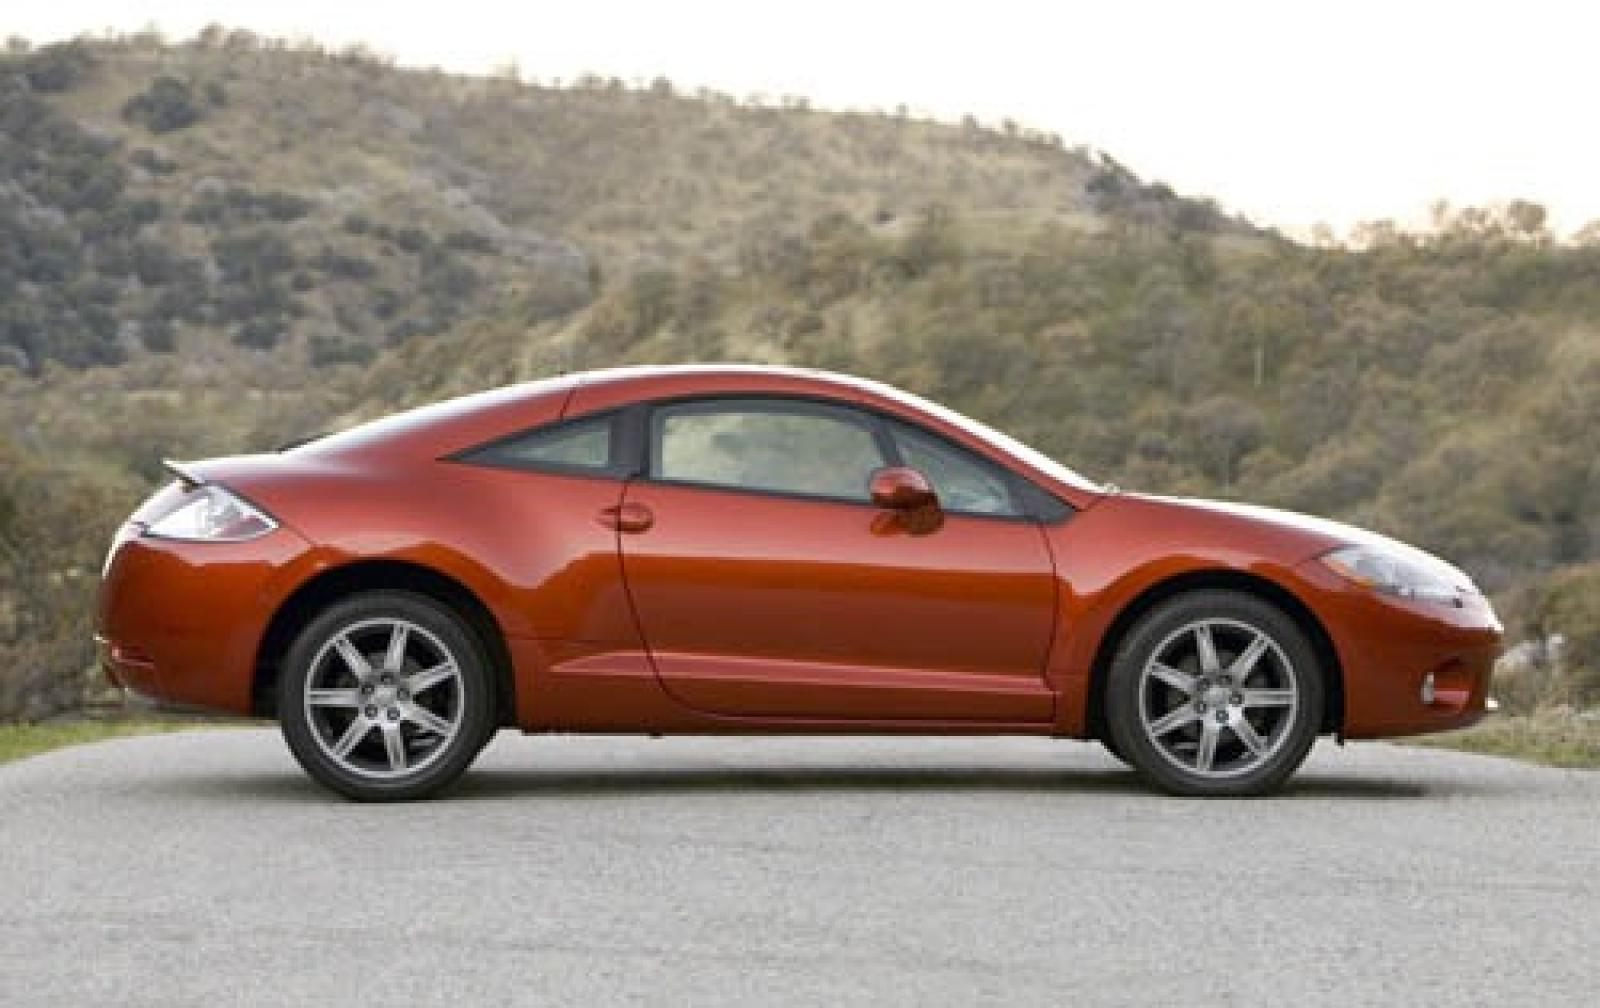 2006 mitsubishi eclipse information and photos zombiedrive. Black Bedroom Furniture Sets. Home Design Ideas